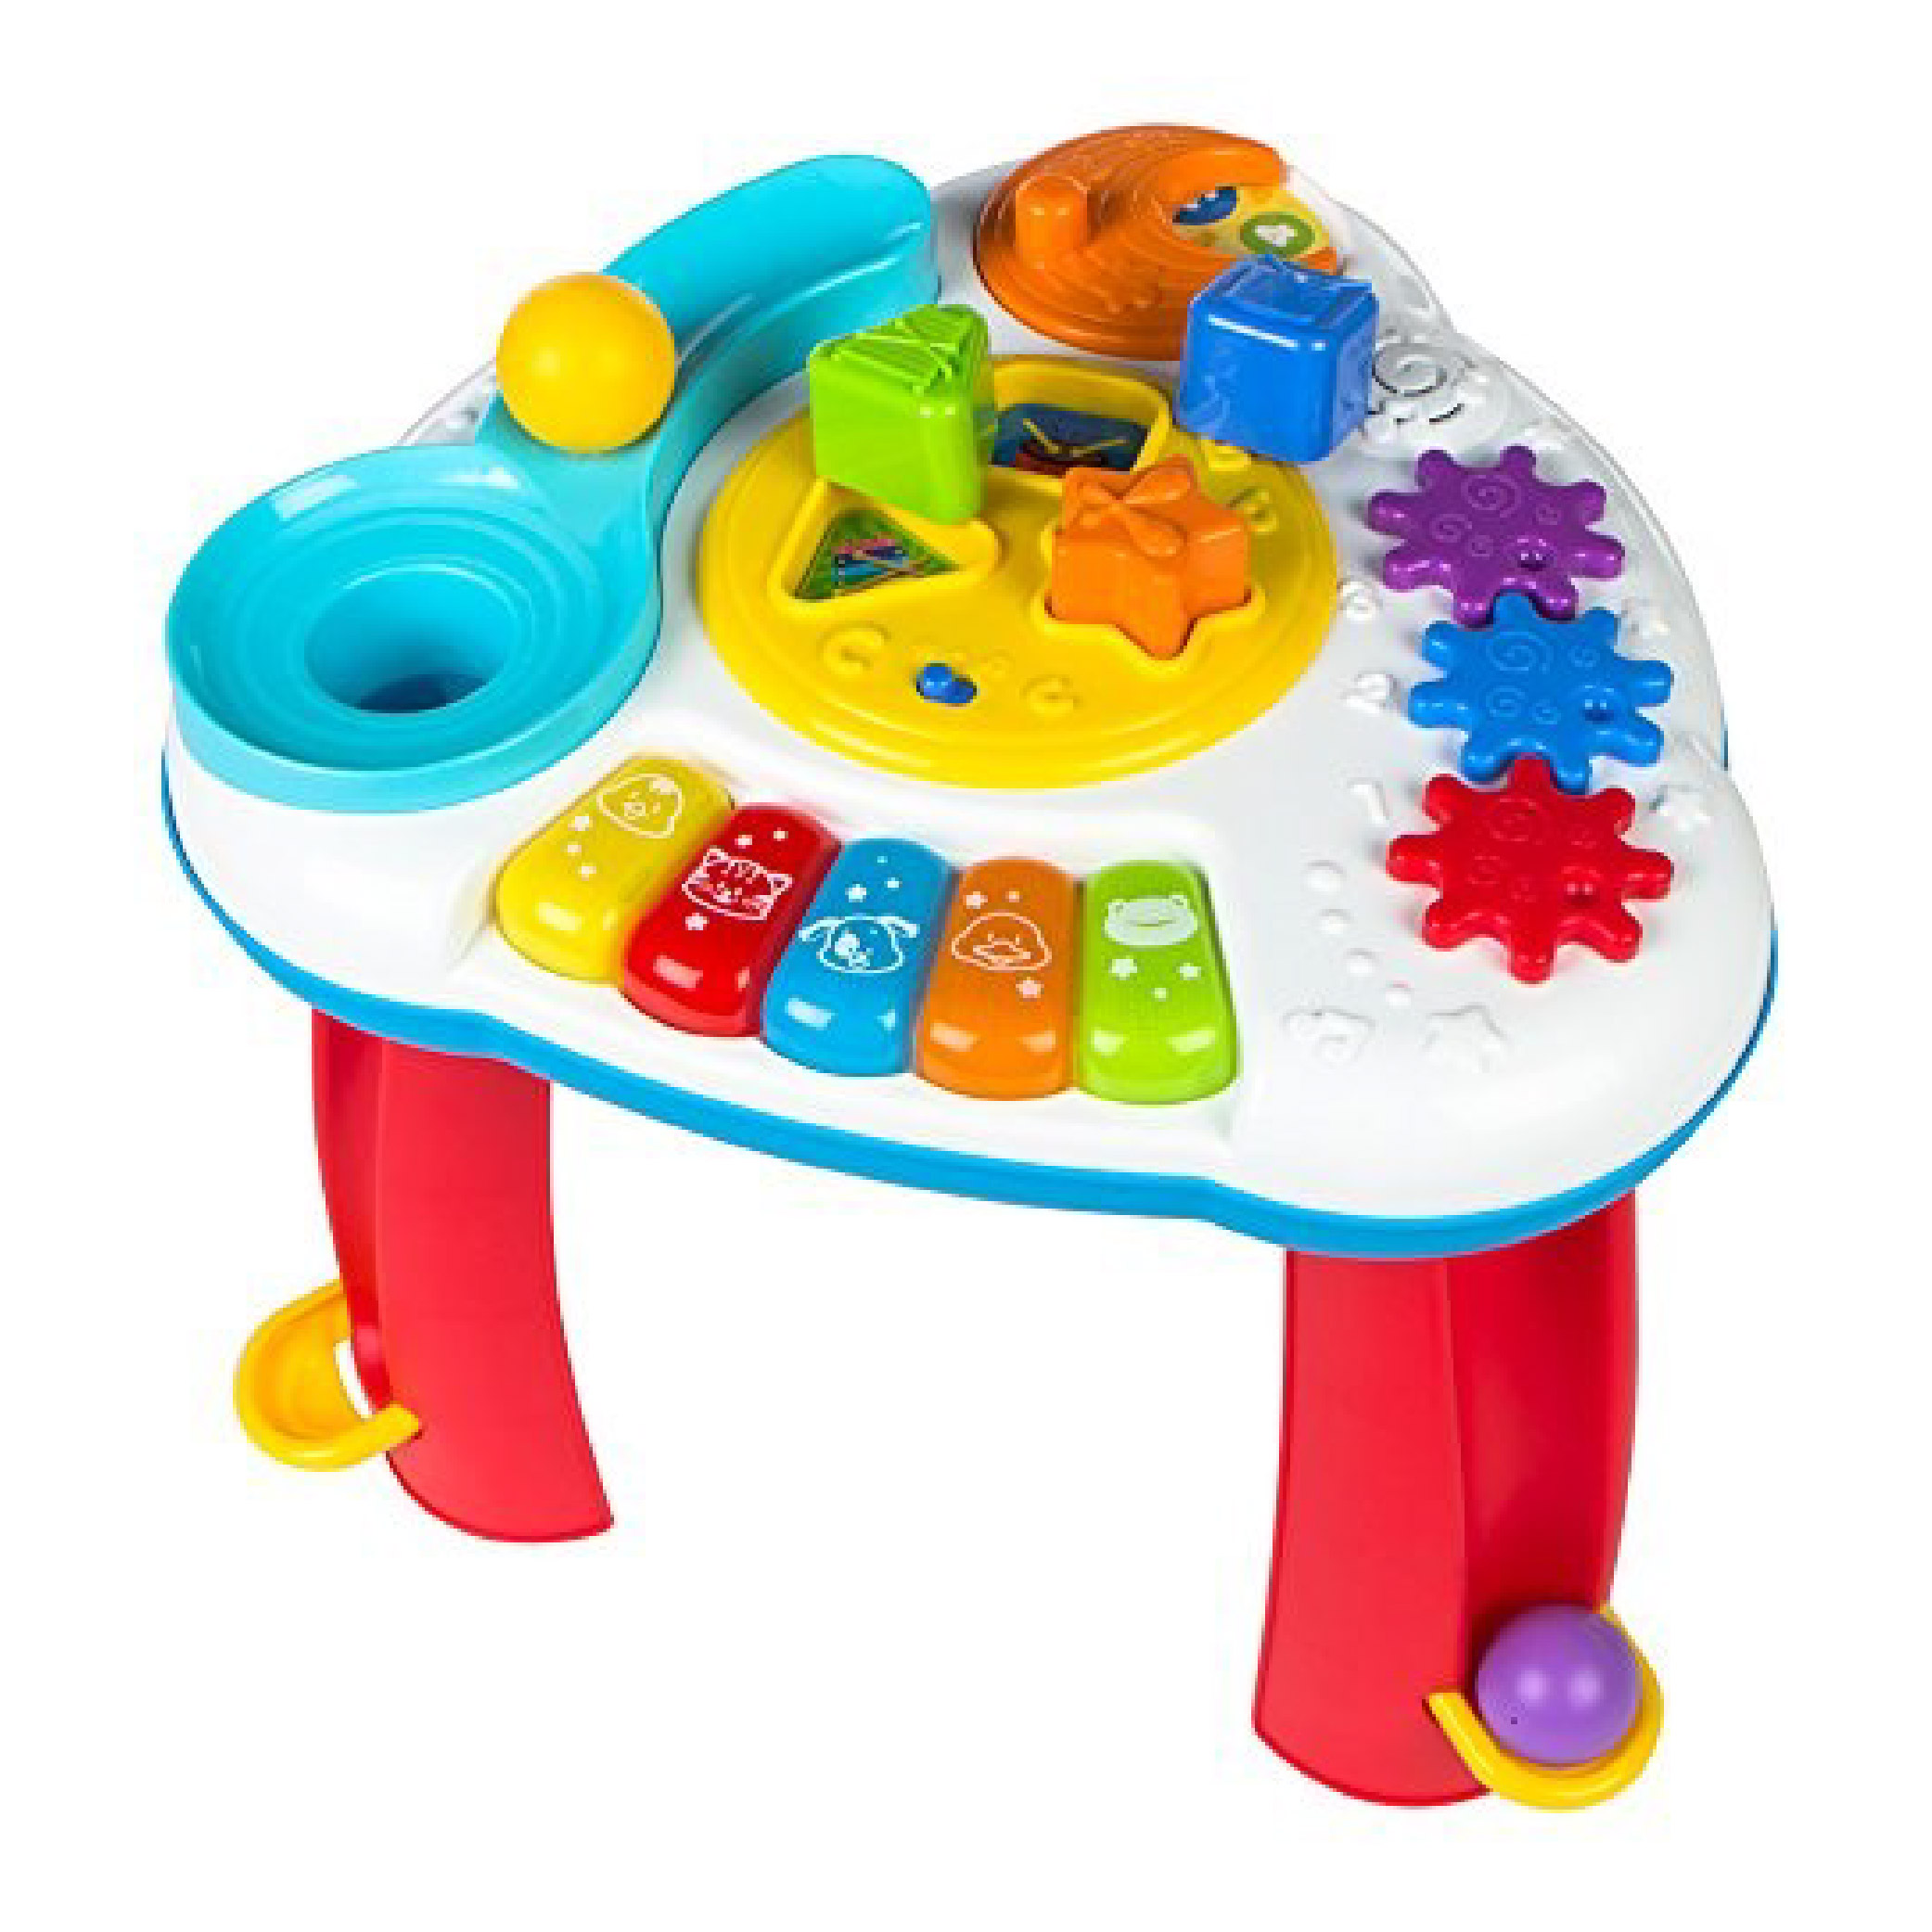 Lot 209_Winfun Balls N Shapes Musical Table-1